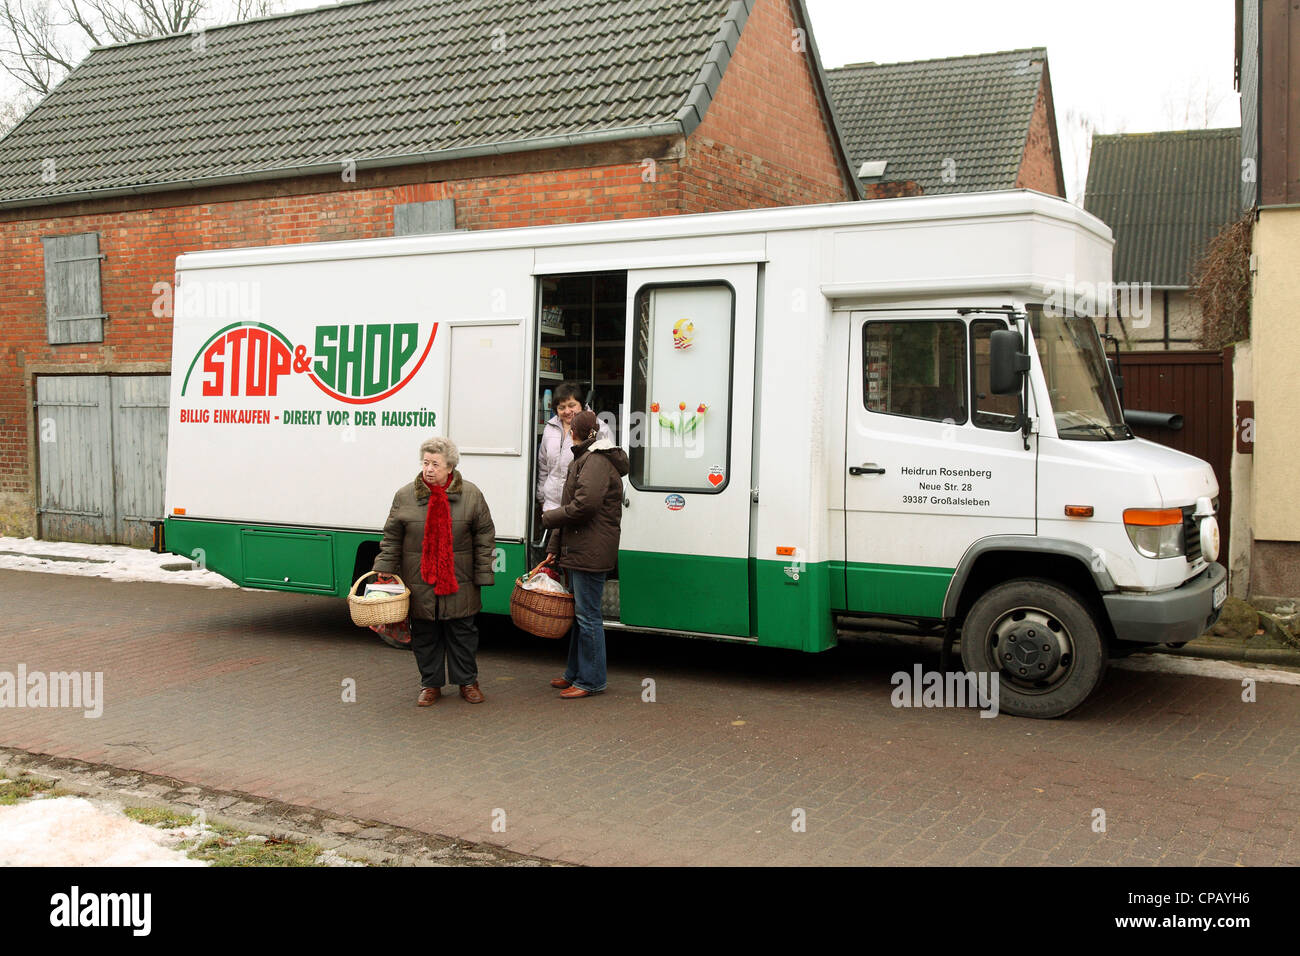 99493d9be617c9 A private mobile grocery store, Hermsdorf, Germany Stock Photo ...